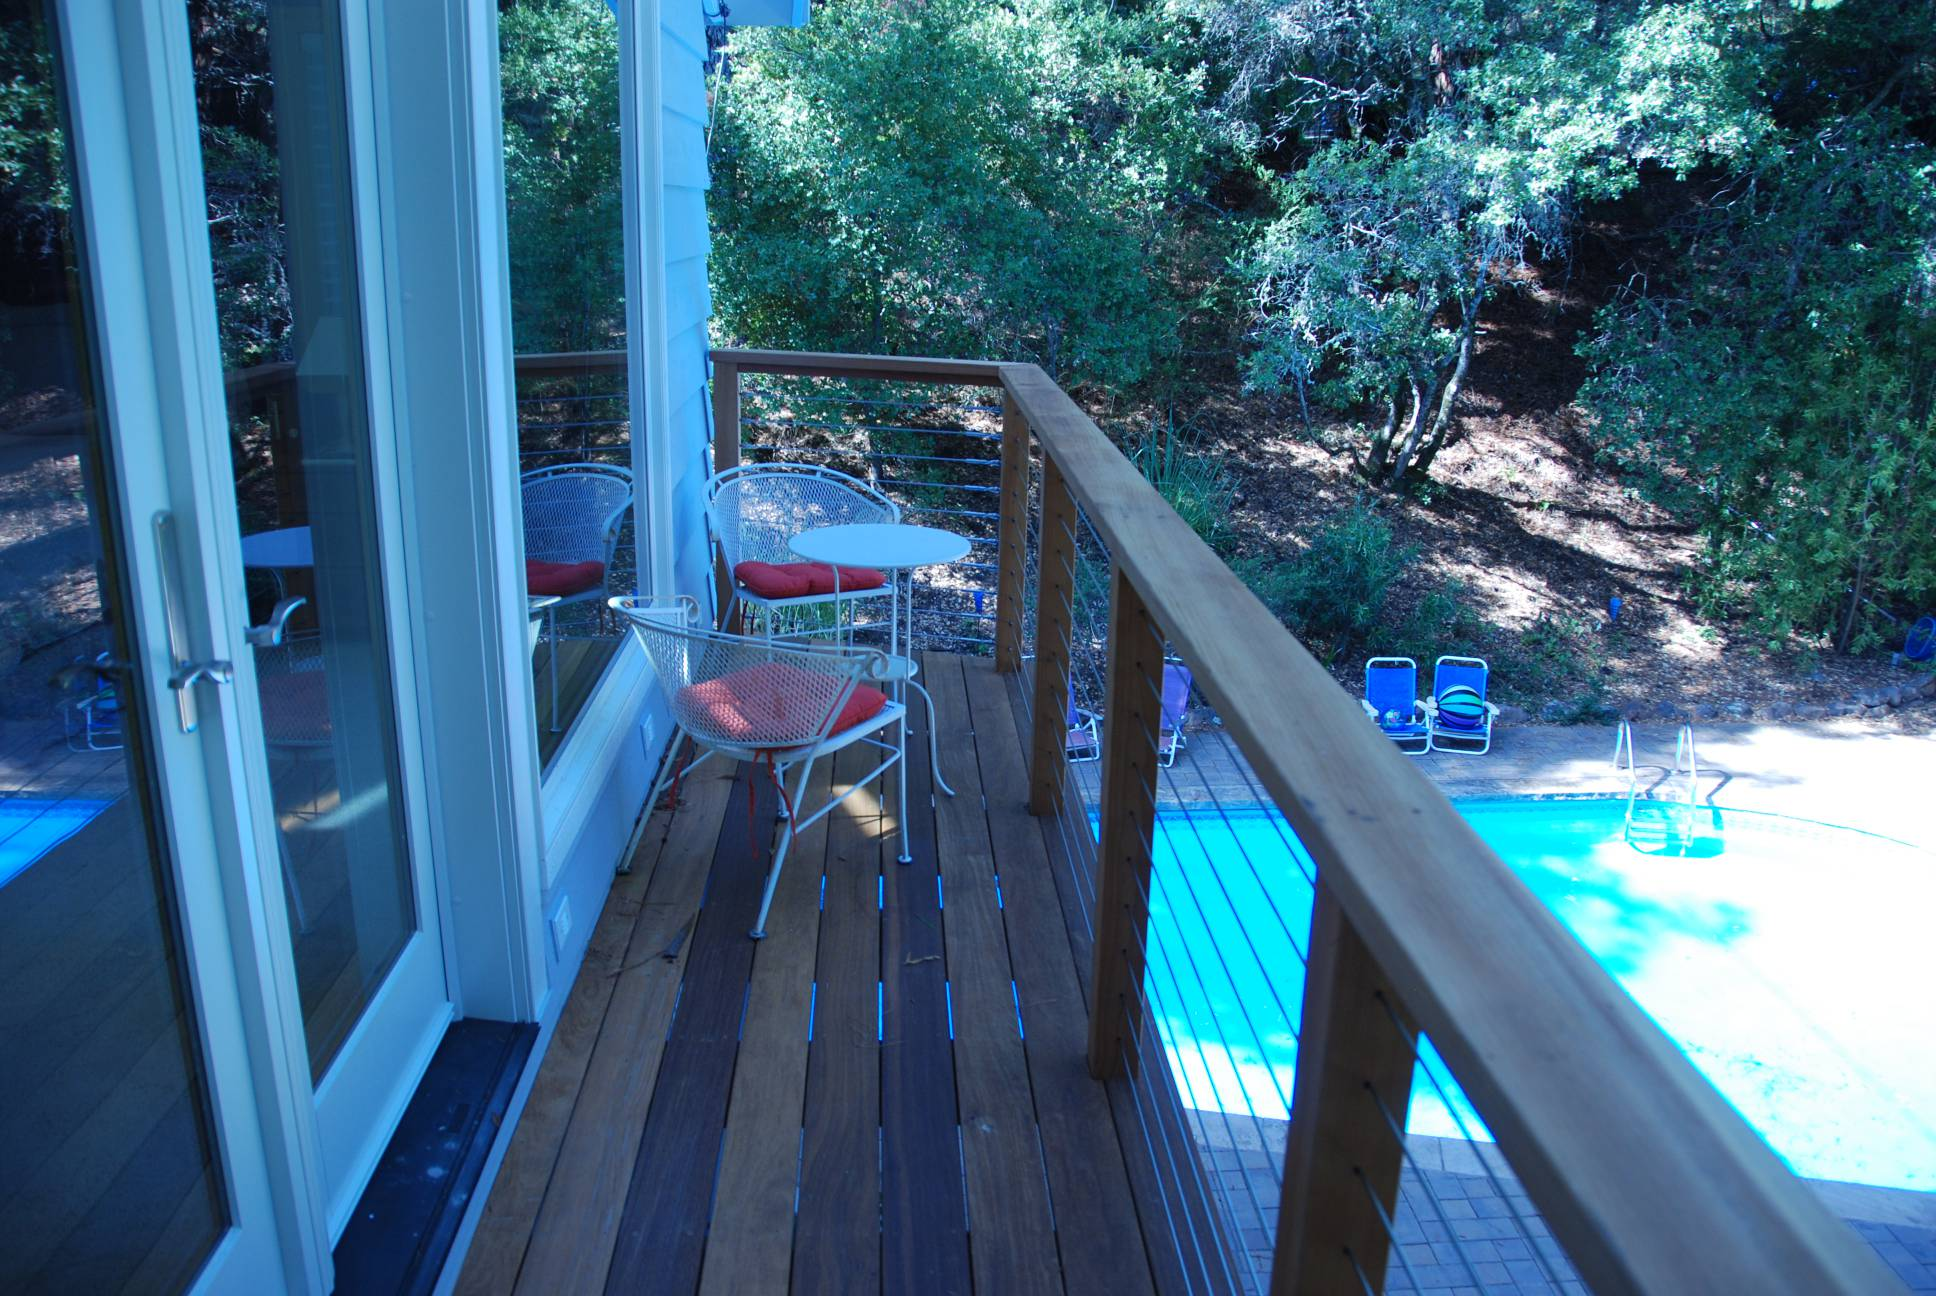 Master balcony pool view, Architect design, exterior design work, Woodside